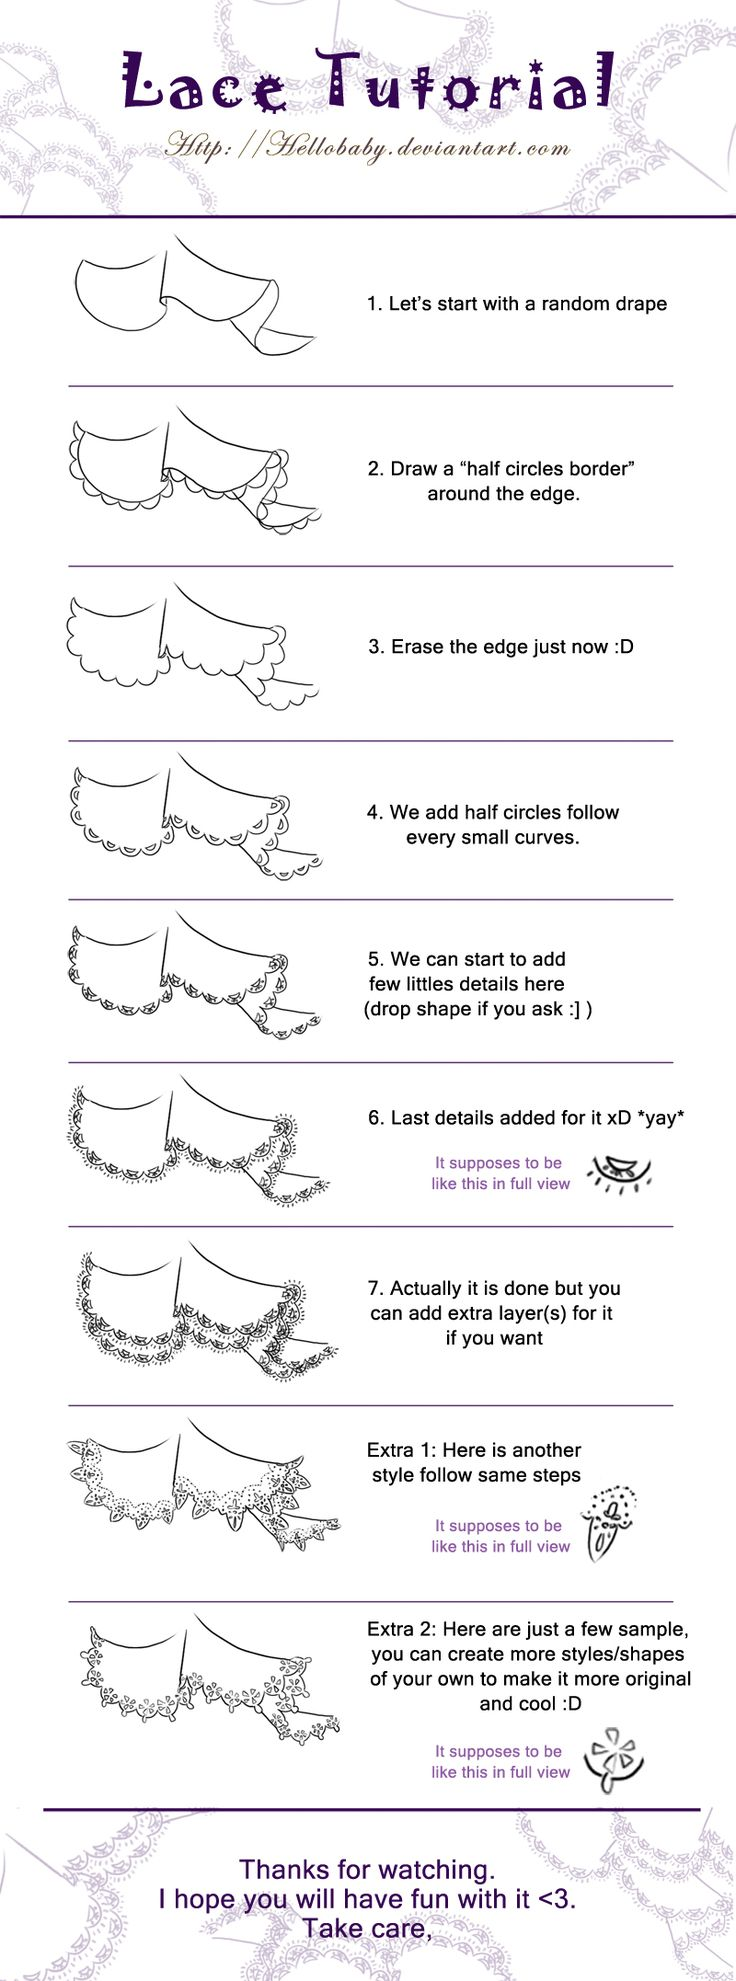 Tops fashion design sketches flat fashion sketch top 045 - Lace Tutorial By Hellobaby Lace Drawingmanga